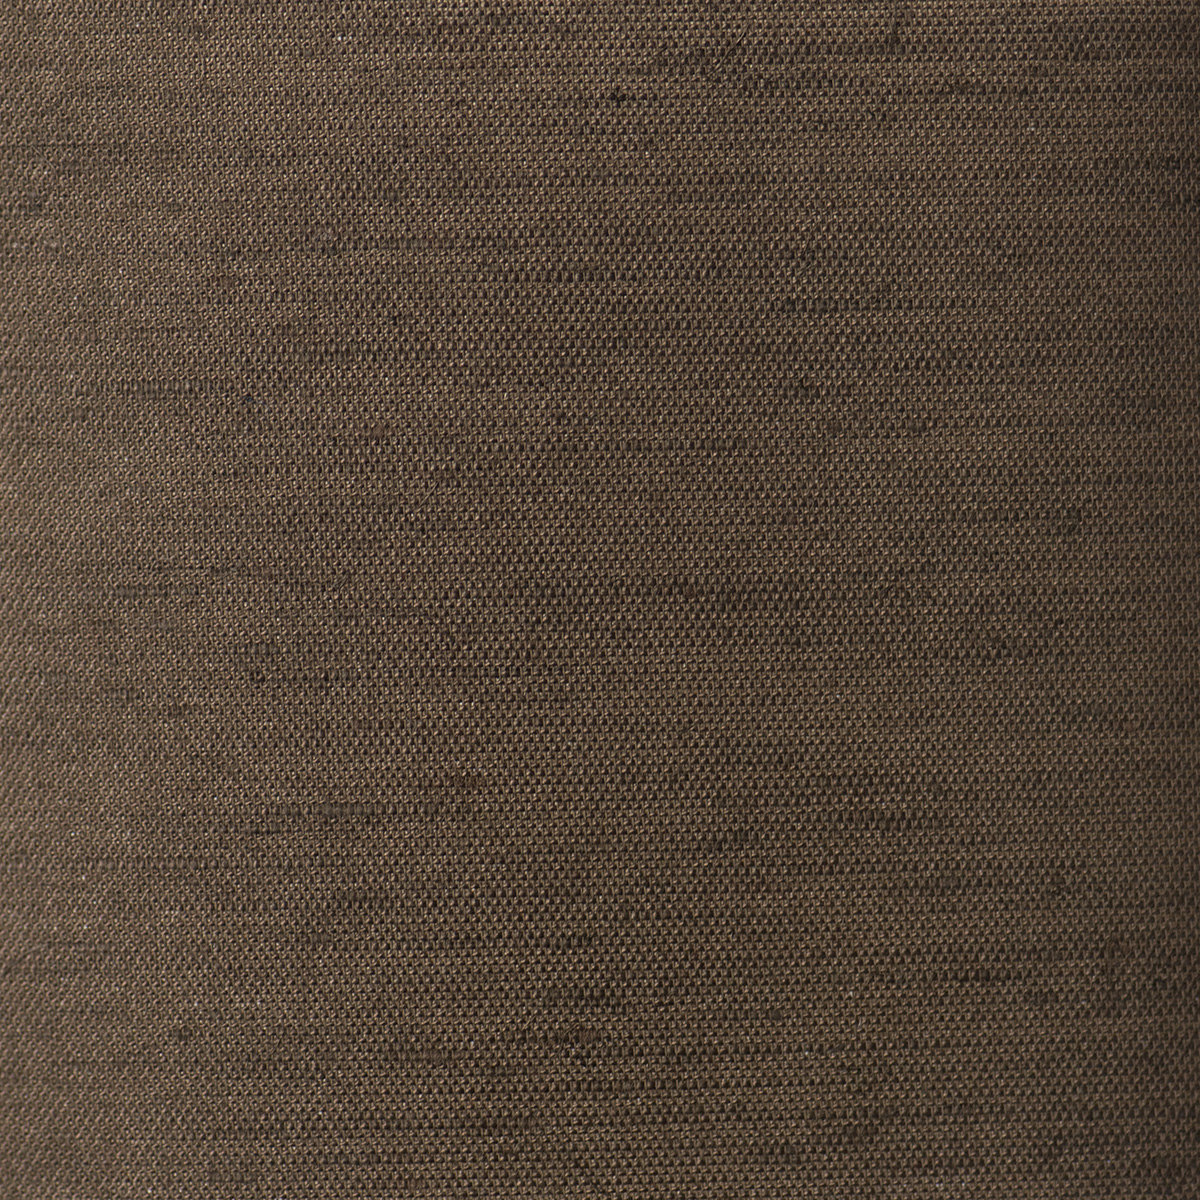 HEATHERED WALNUT